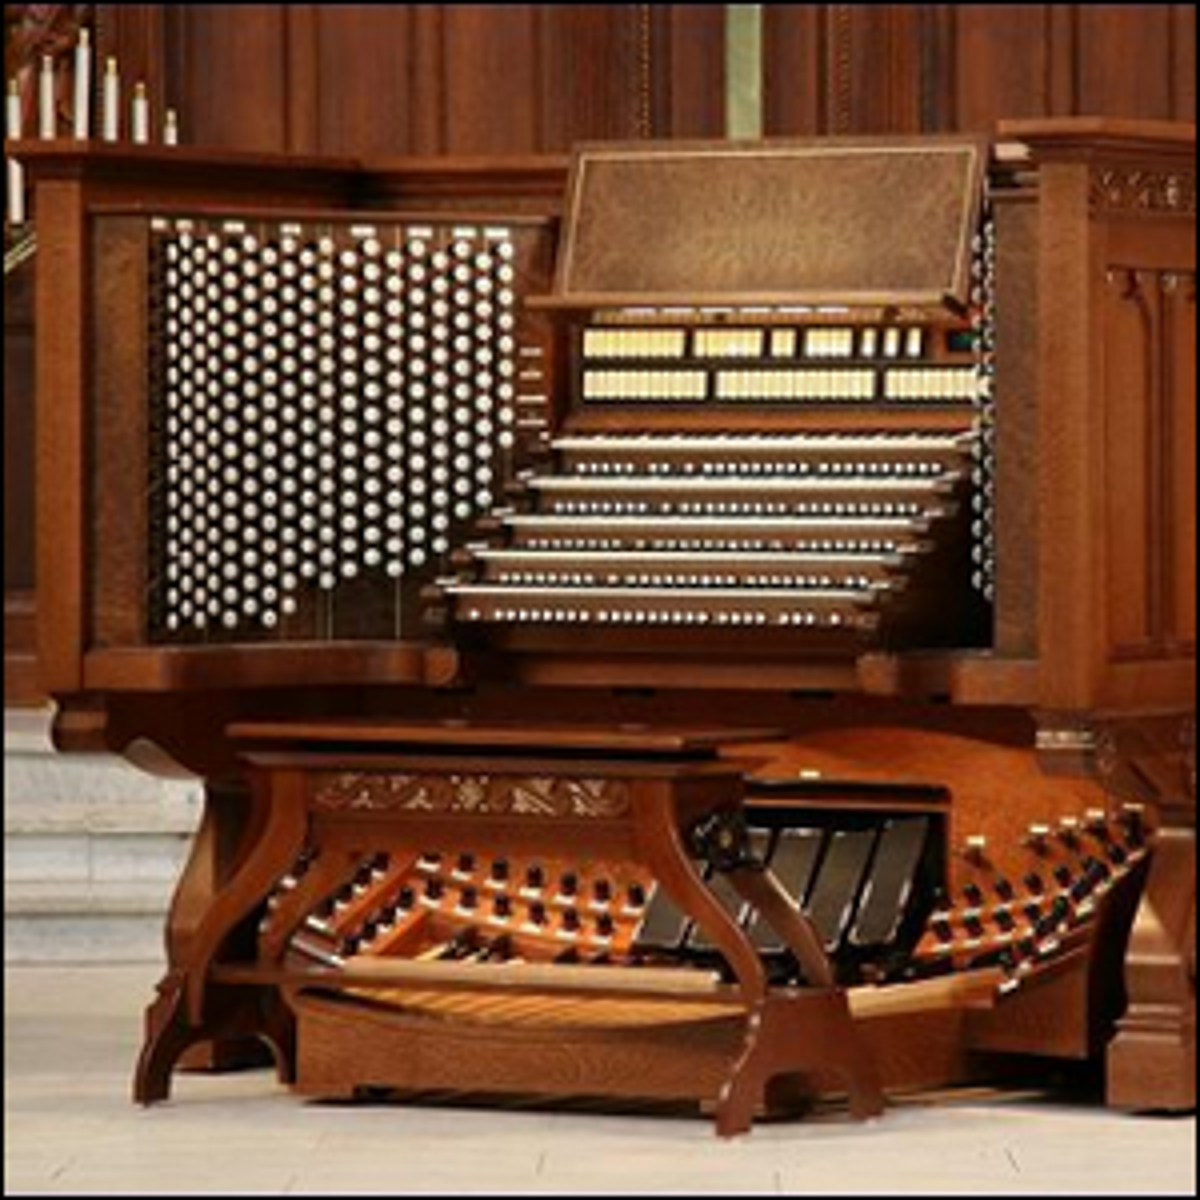 A photo of the console of the organ at the United States Naval Academy chapel.